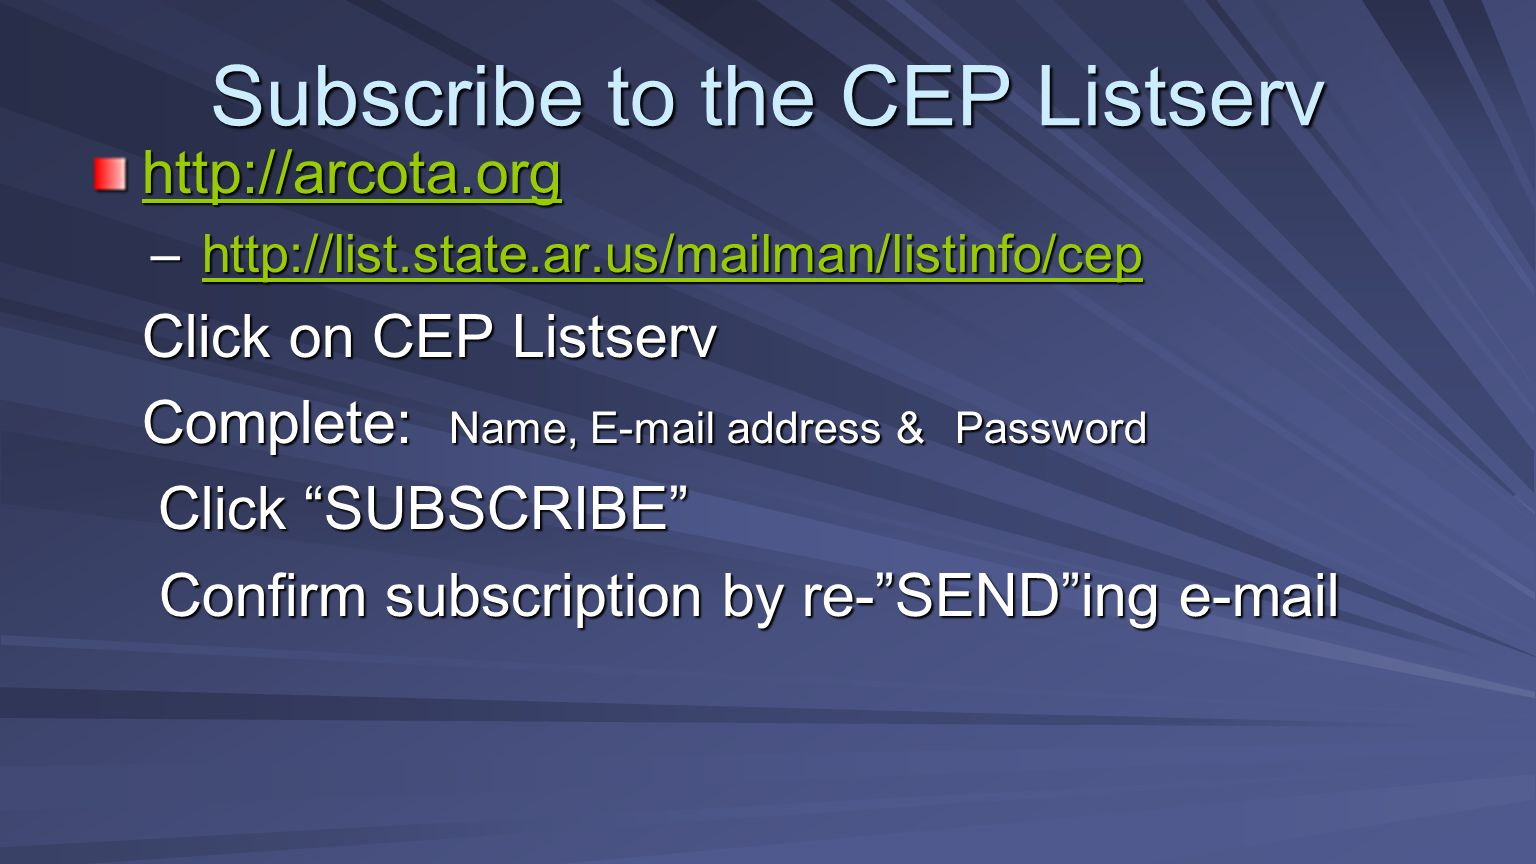 Subscribe to the CEP Listserv http://arcota.org –http://list.state.ar.us/mailman/listinfo/cep http://list.state.ar.us/mailman/listinfo/cep Click on CEP Listserv Complete: Name, E-mail address & Password Click SUBSCRIBE Click SUBSCRIBE Confirm subscription by re-SENDing e-mail Confirm subscription by re-SENDing e-mail